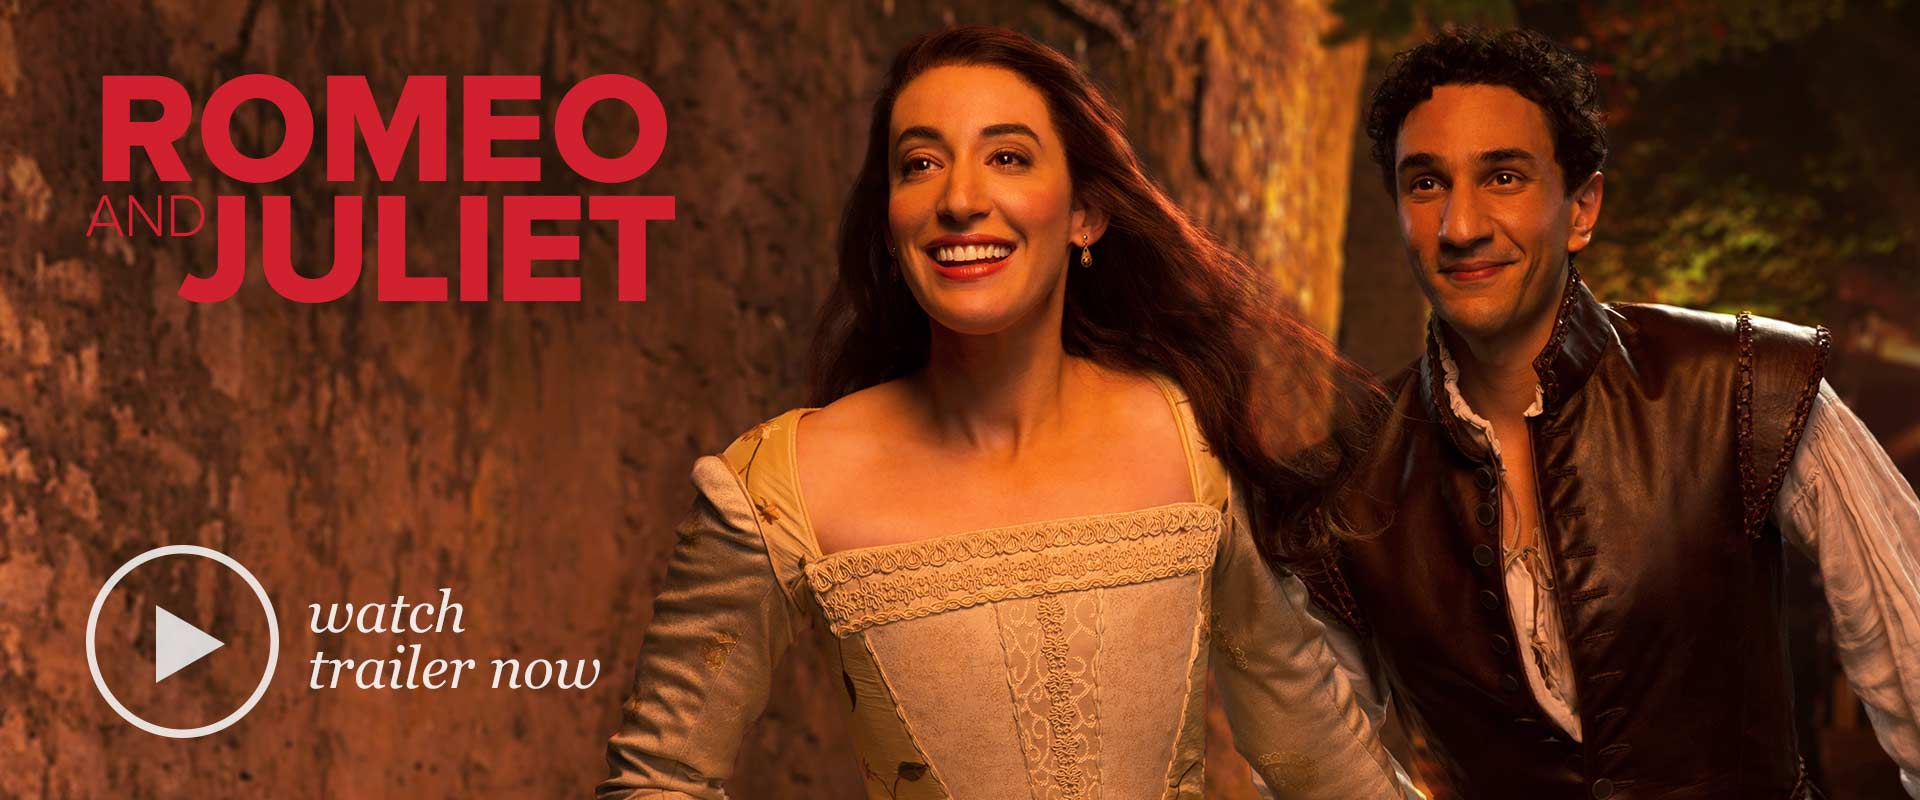 Publicity image from Romeo and Juliet linking to a teaser trailer